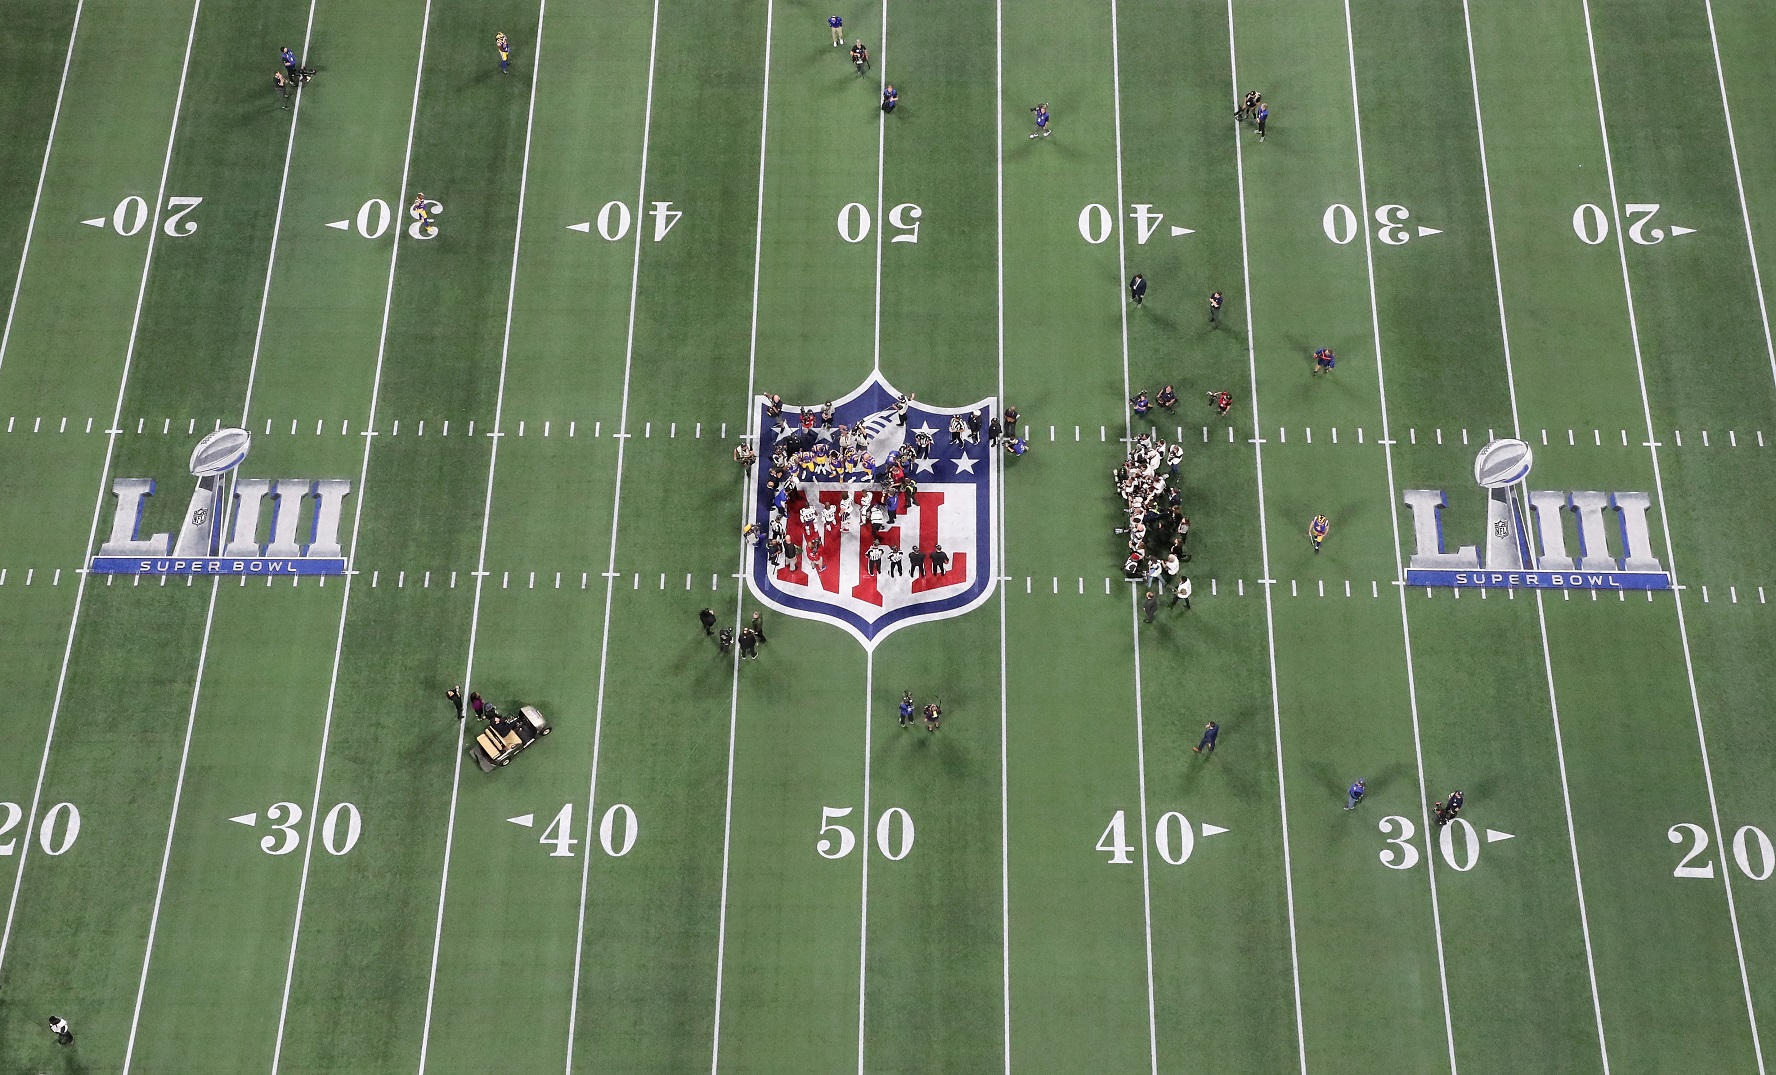 ESPN was the first network to superimpose the first-down line on the TV screen